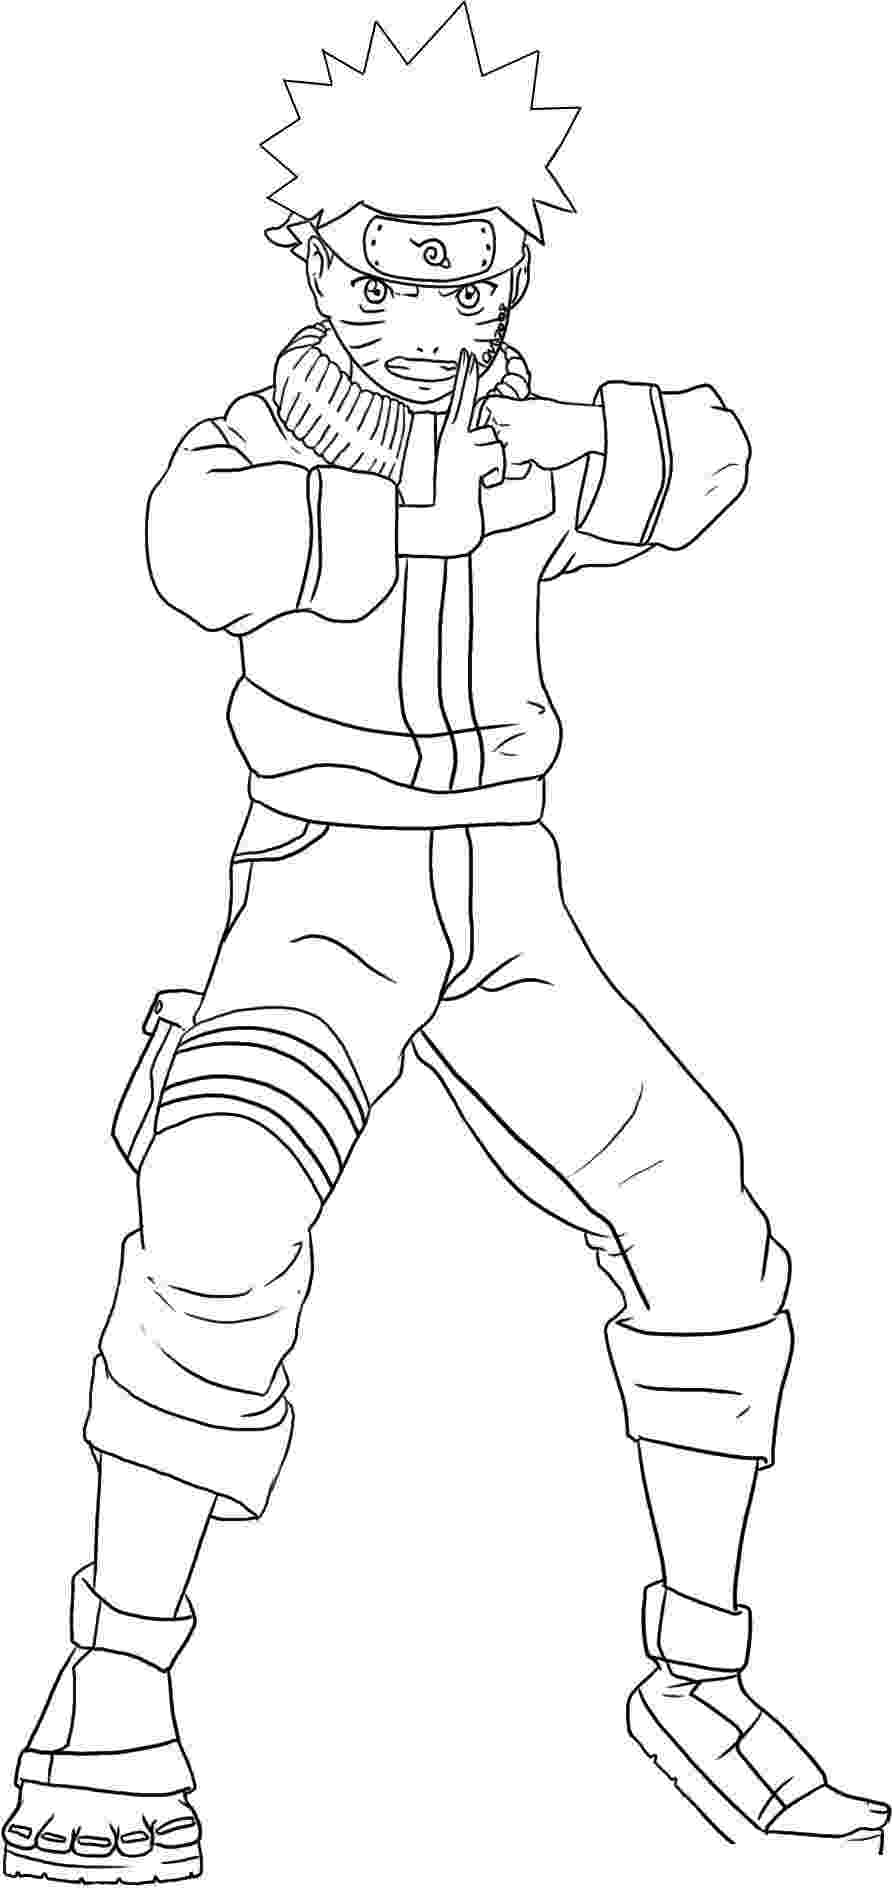 coloring pages naruto printable naruto coloring pages to get your kids occupied naruto coloring pages